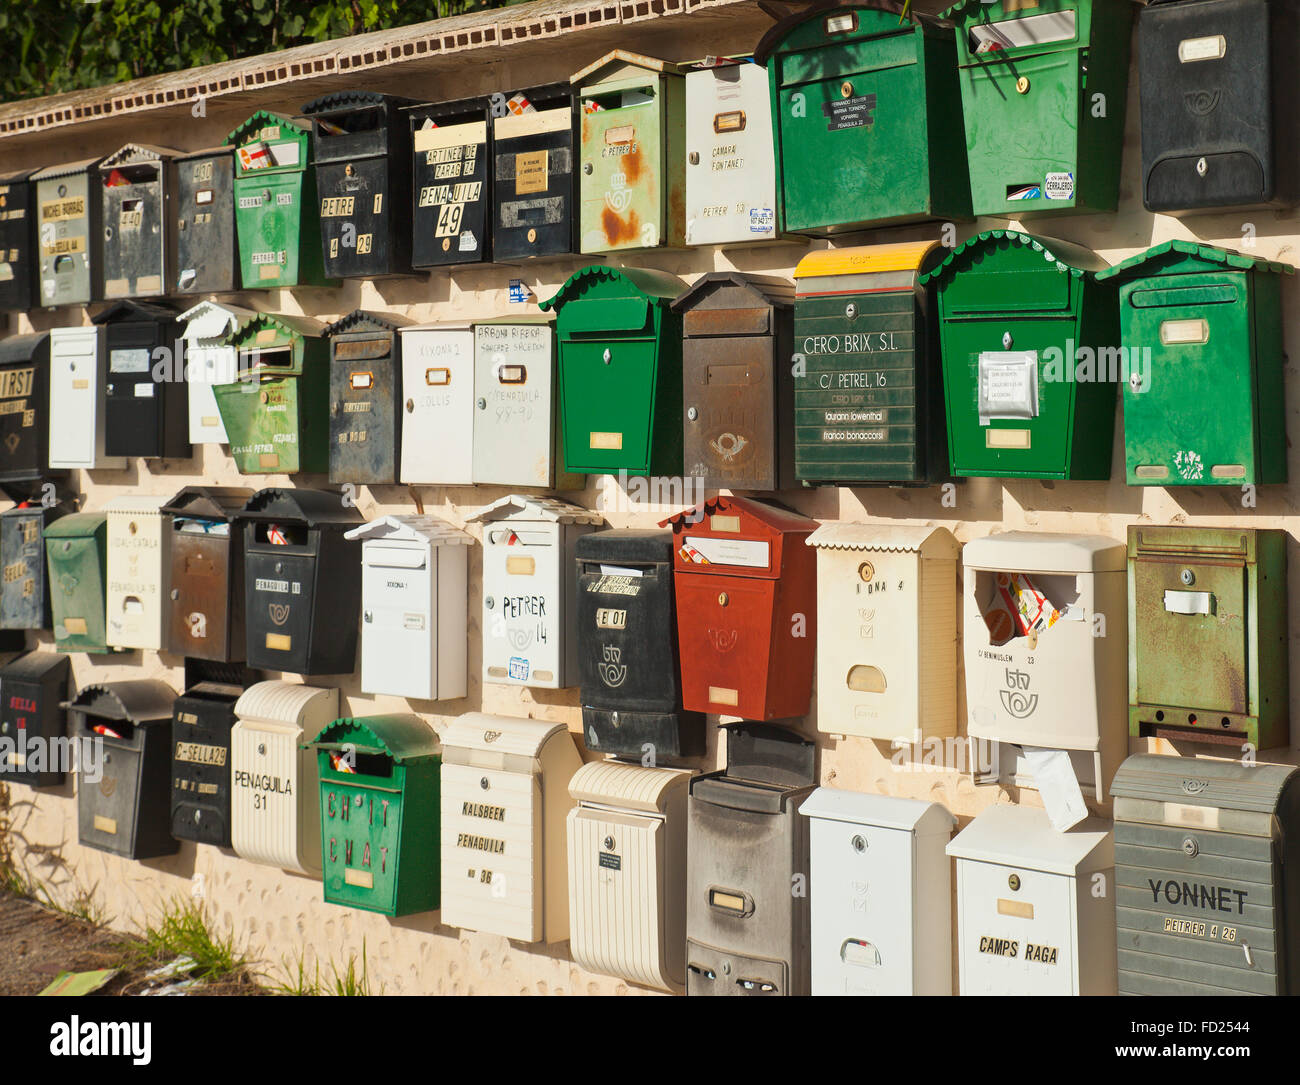 Wall of letter boxes. - Stock Image